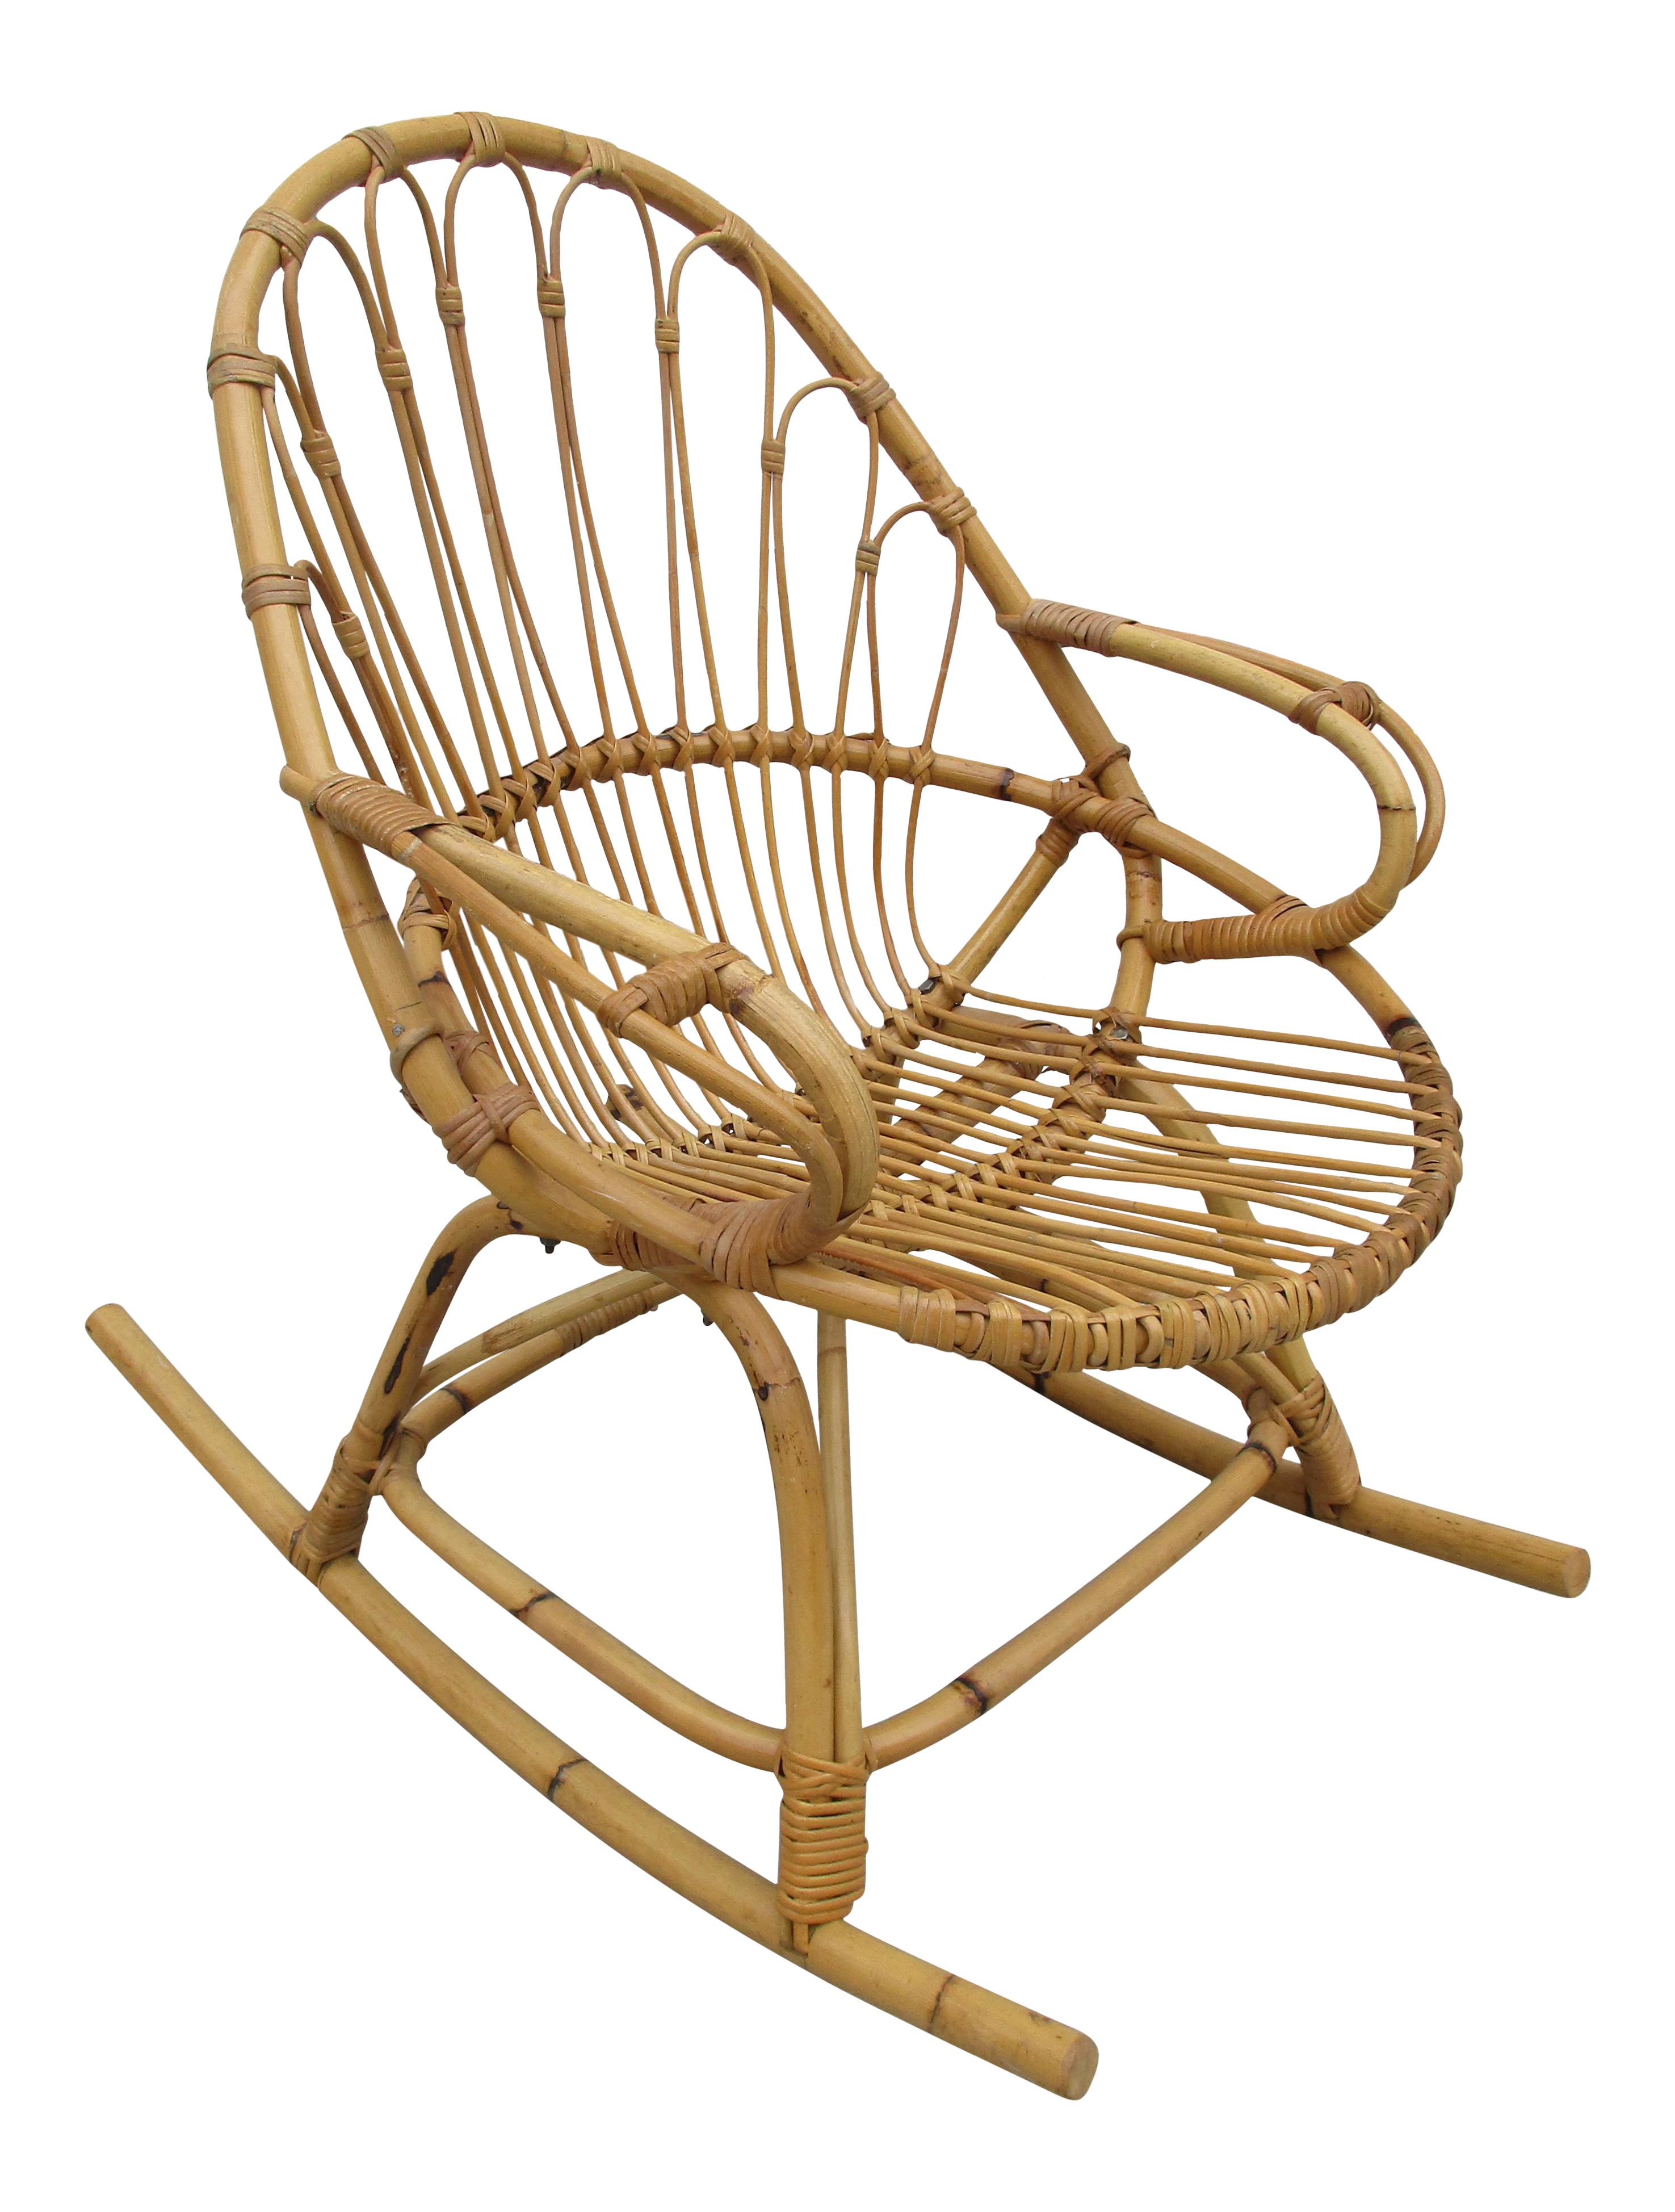 bamboo and wicker rocking chair